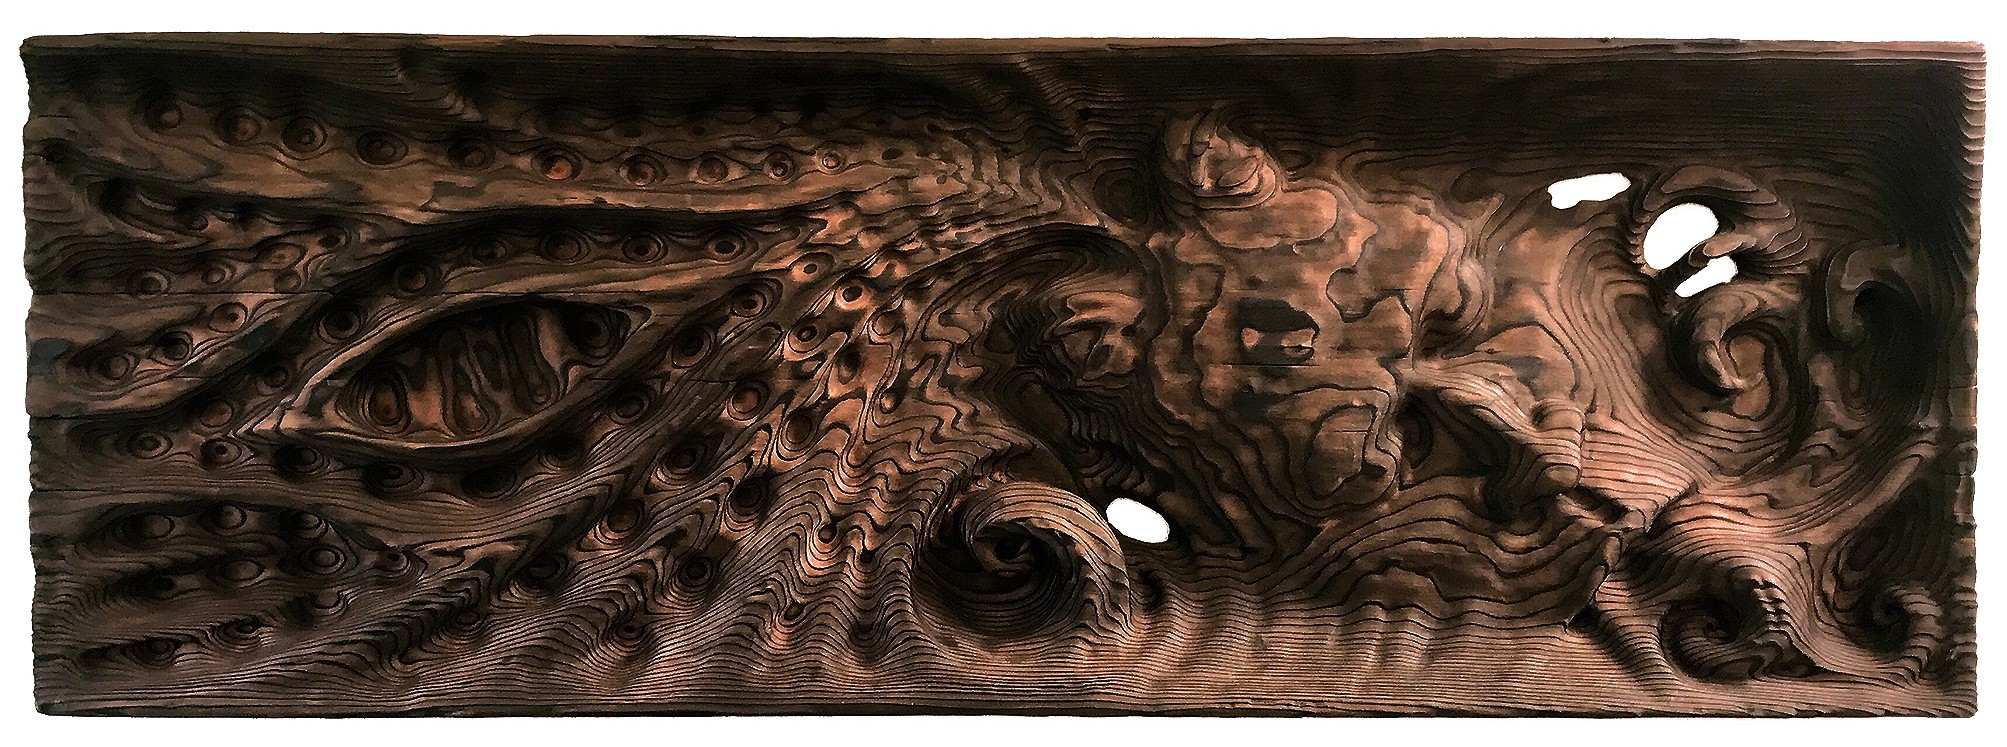 ayahuasca visions showed artist an ancient woodworking